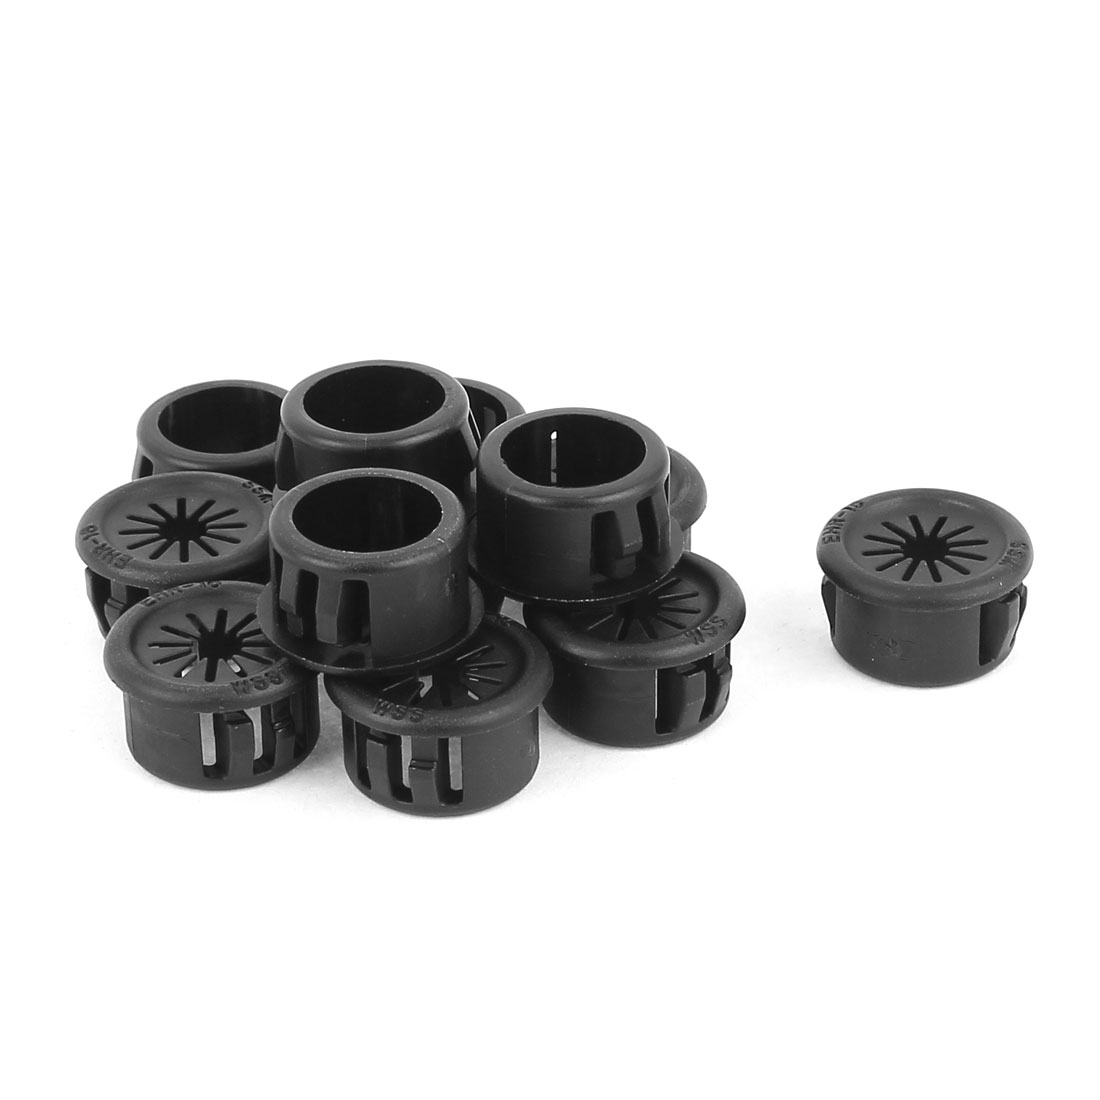 Cable Hose 16mm Mount Dia Snap in Webbed Bushing Harness Grommet Protect 12 Pcs